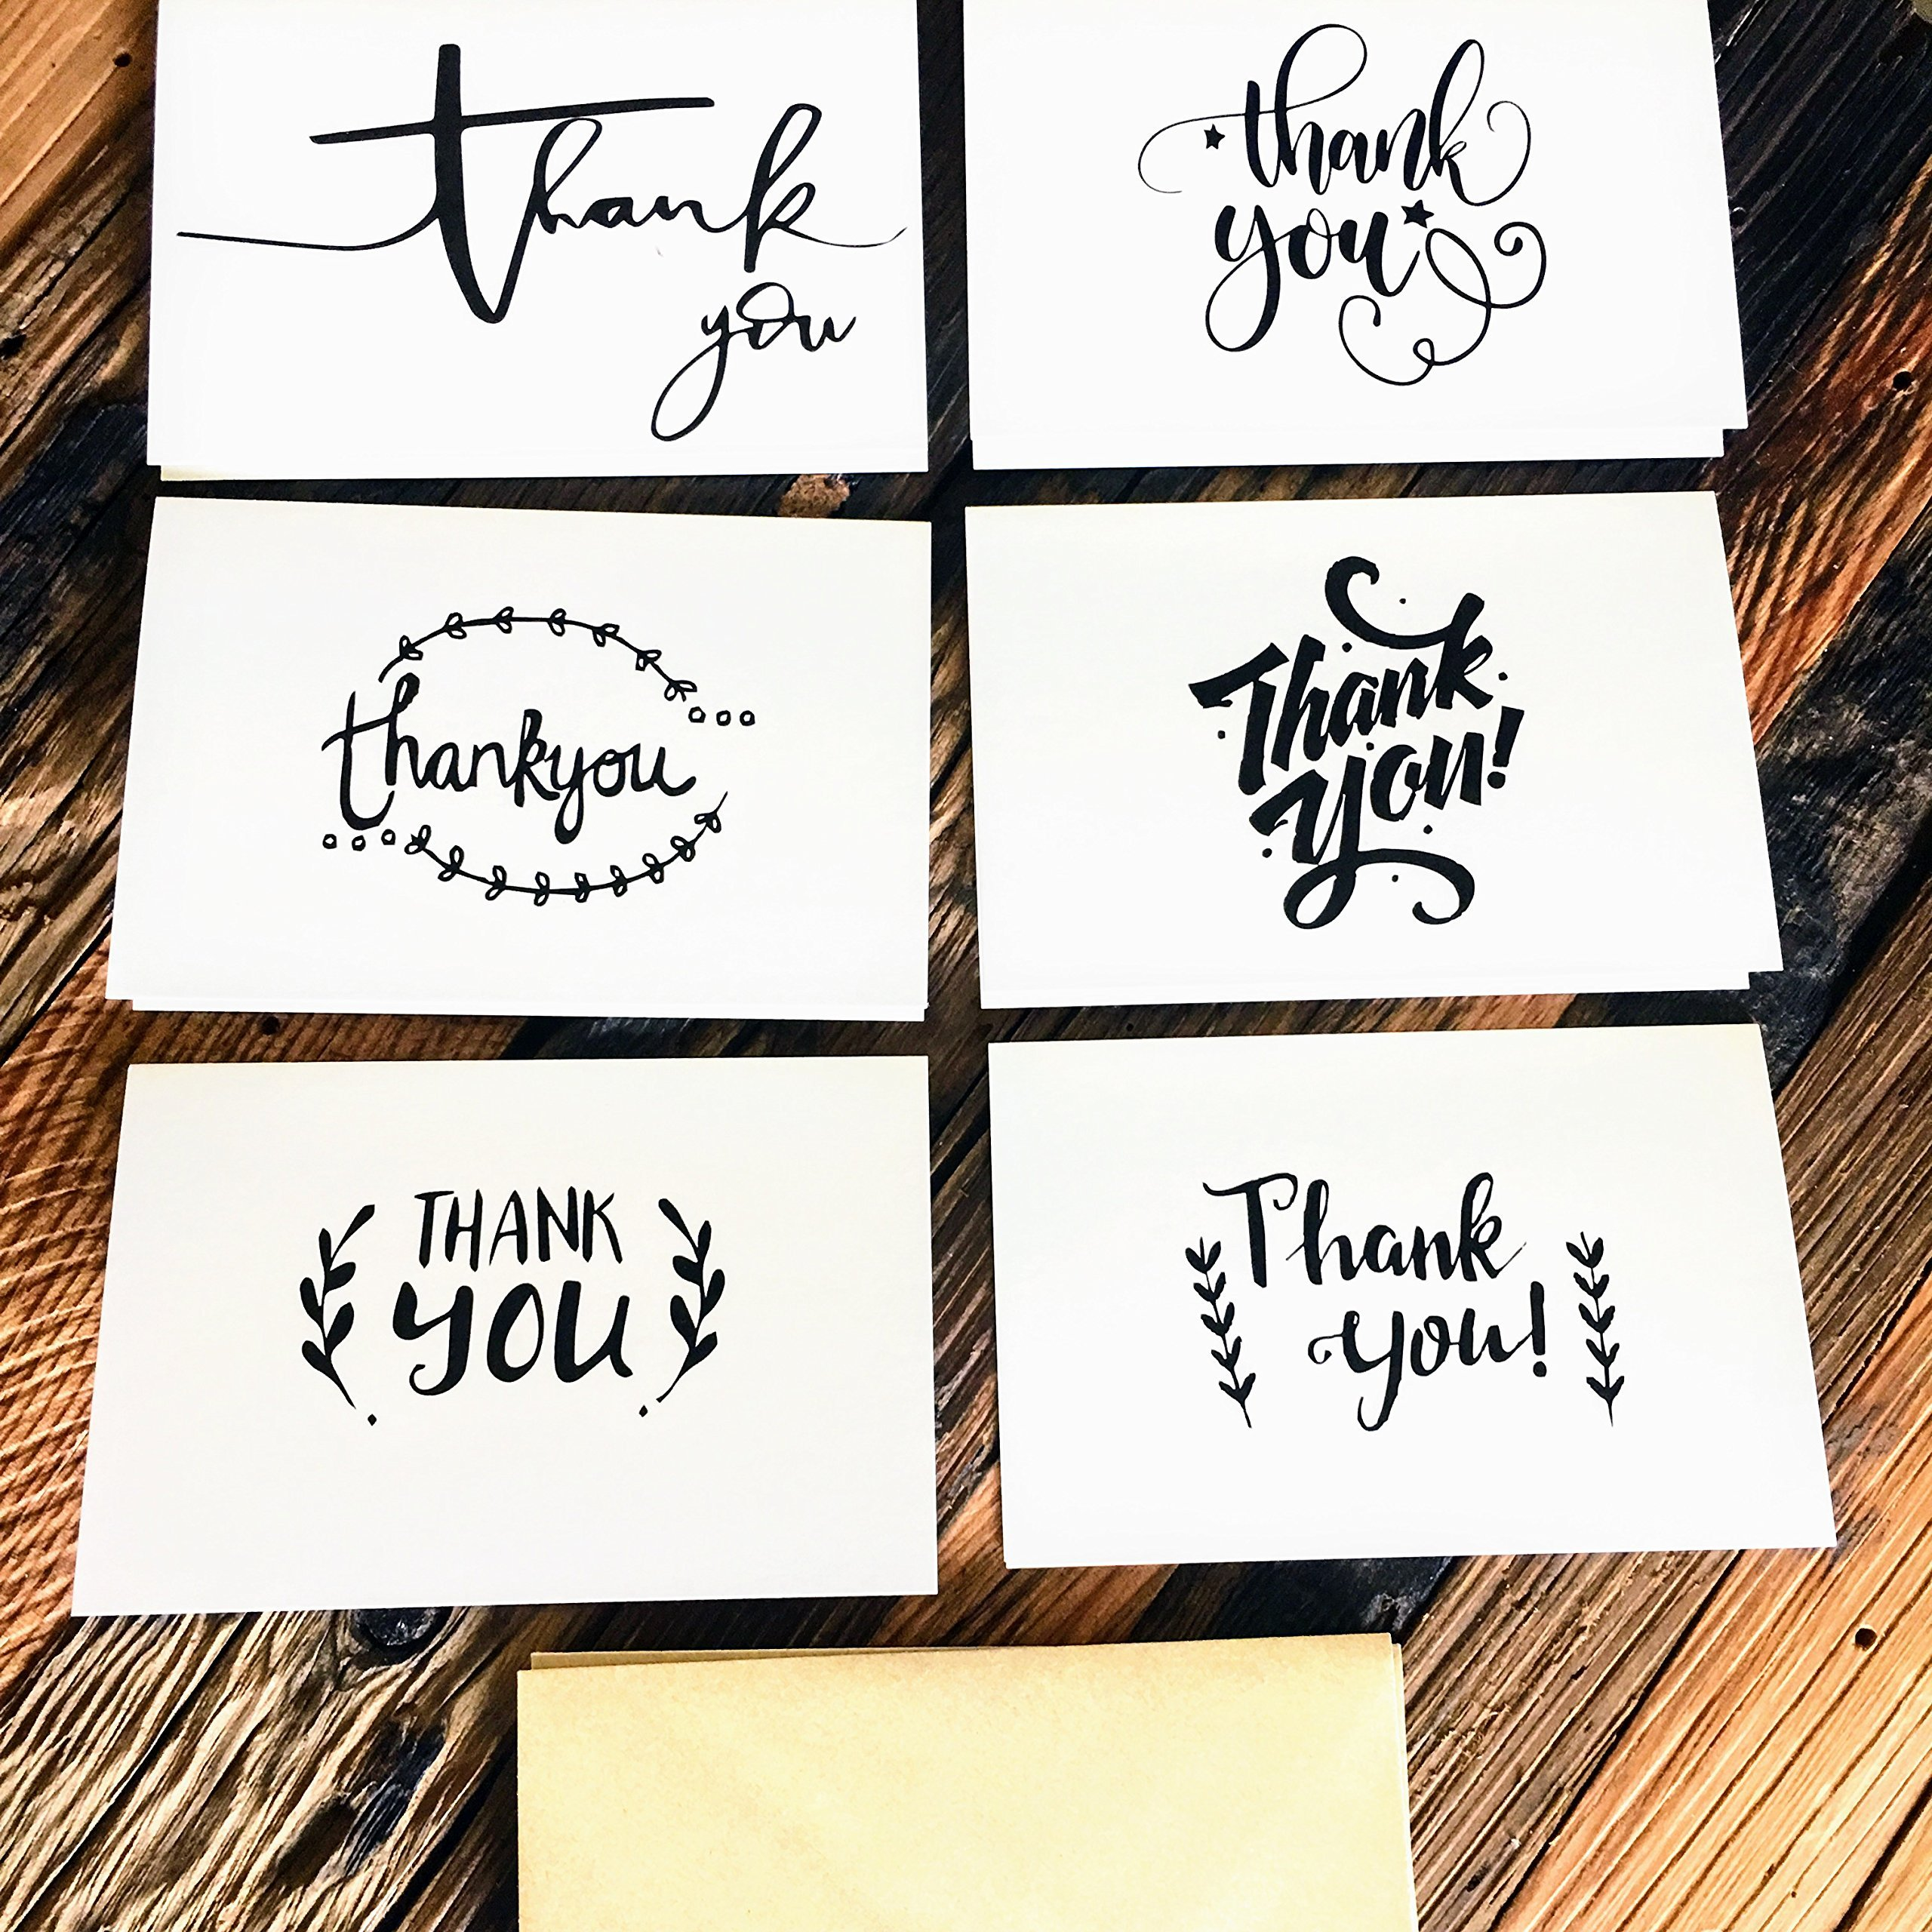 Thank You Cards with Glue Envelopes 36-Count, Kraft Paper Envelopes - Blank on The Inside, Handwritten Style - 4 x 6 Inches - Great for Business, Wedding, Graduation, Baby/Bridal Shower, Professional by SJ Products (Image #4)